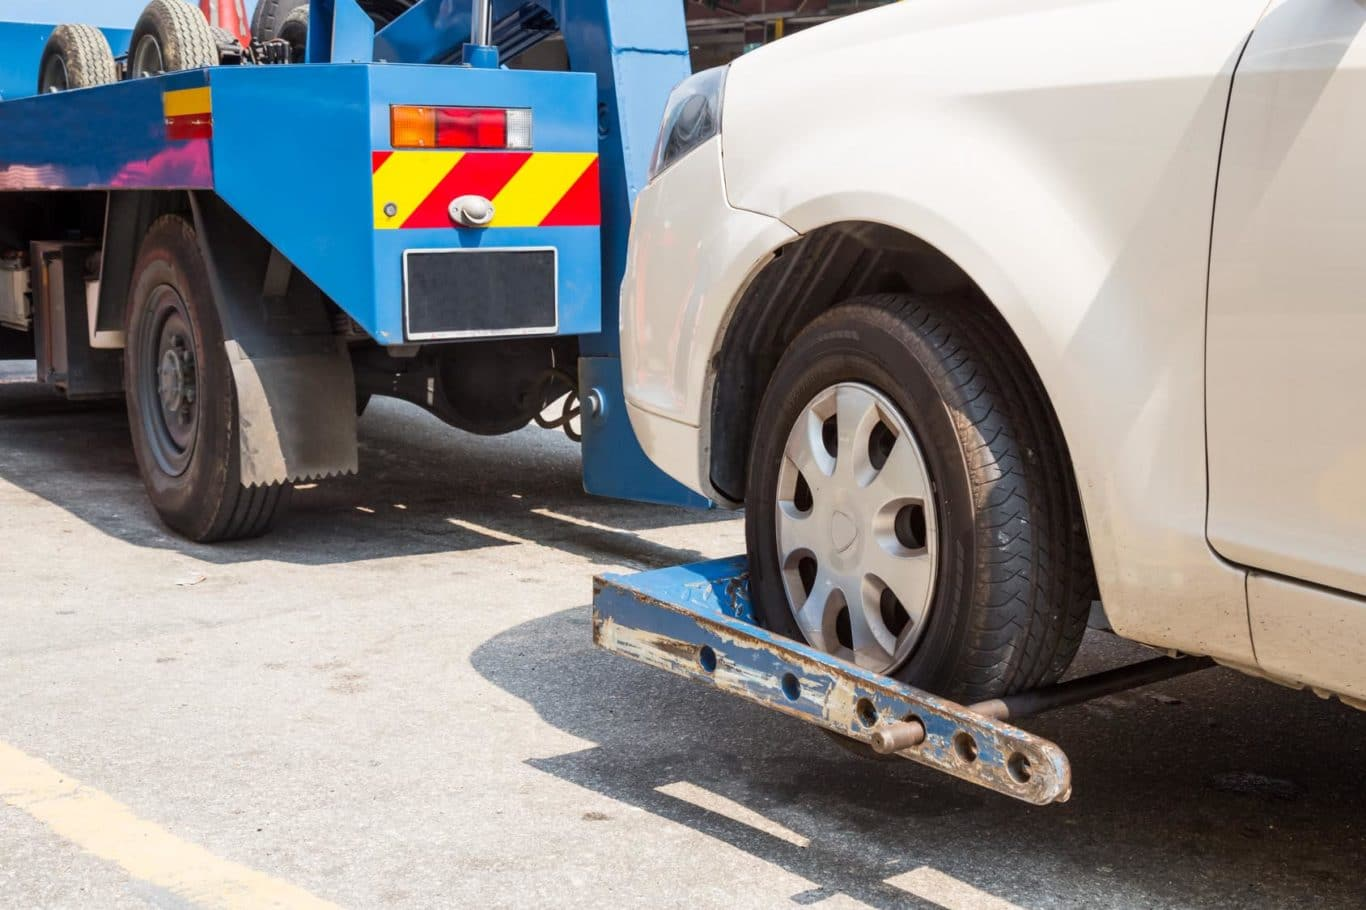 Glendalough expert Car Towing services